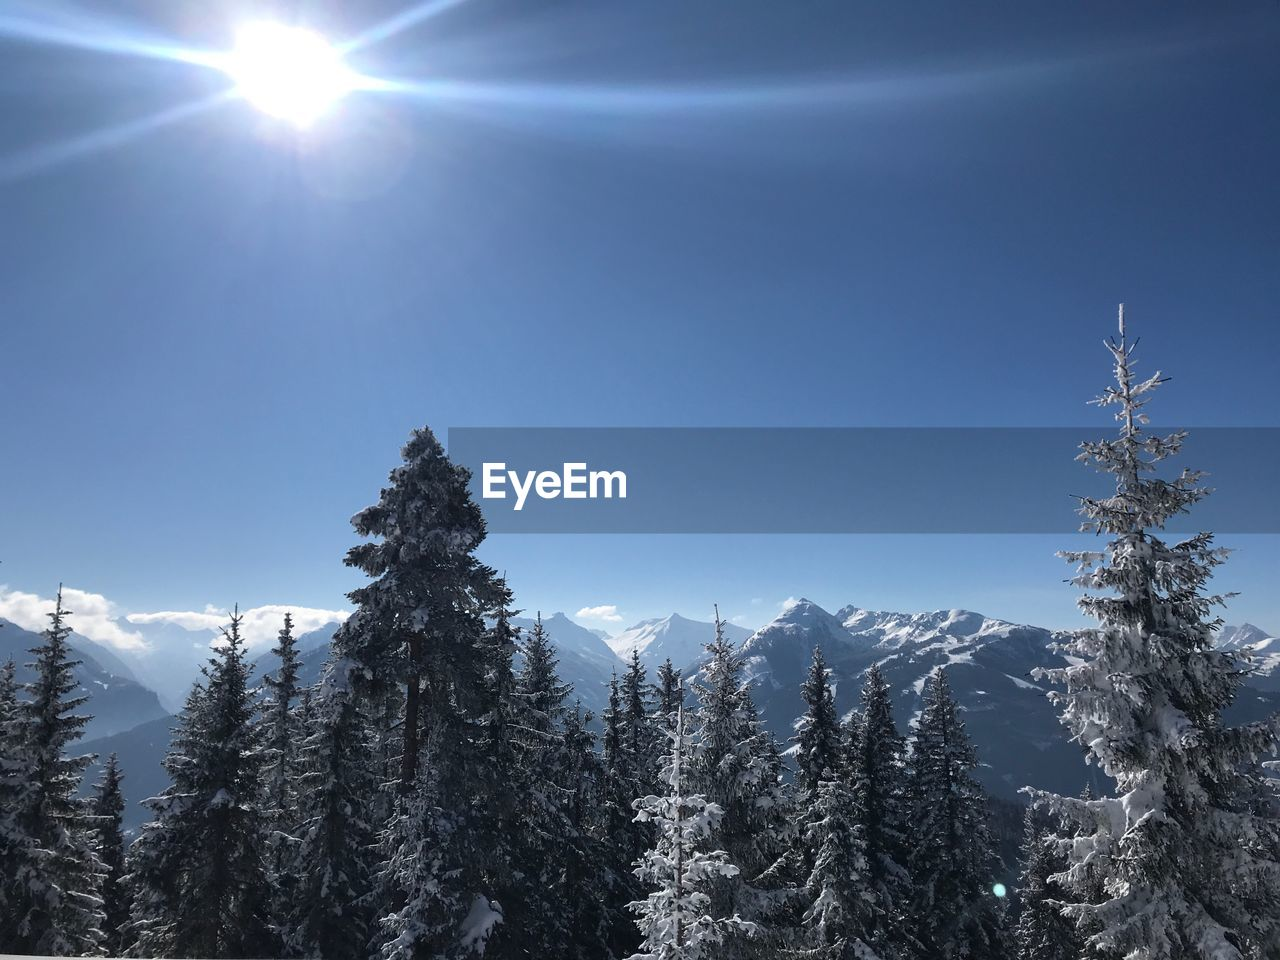 sky, plant, snow, winter, cold temperature, beauty in nature, tranquility, tree, sun, nature, tranquil scene, no people, day, sunlight, scenics - nature, low angle view, growth, sunbeam, lens flare, outdoors, bright, snowcapped mountain, coniferous tree, pine tree